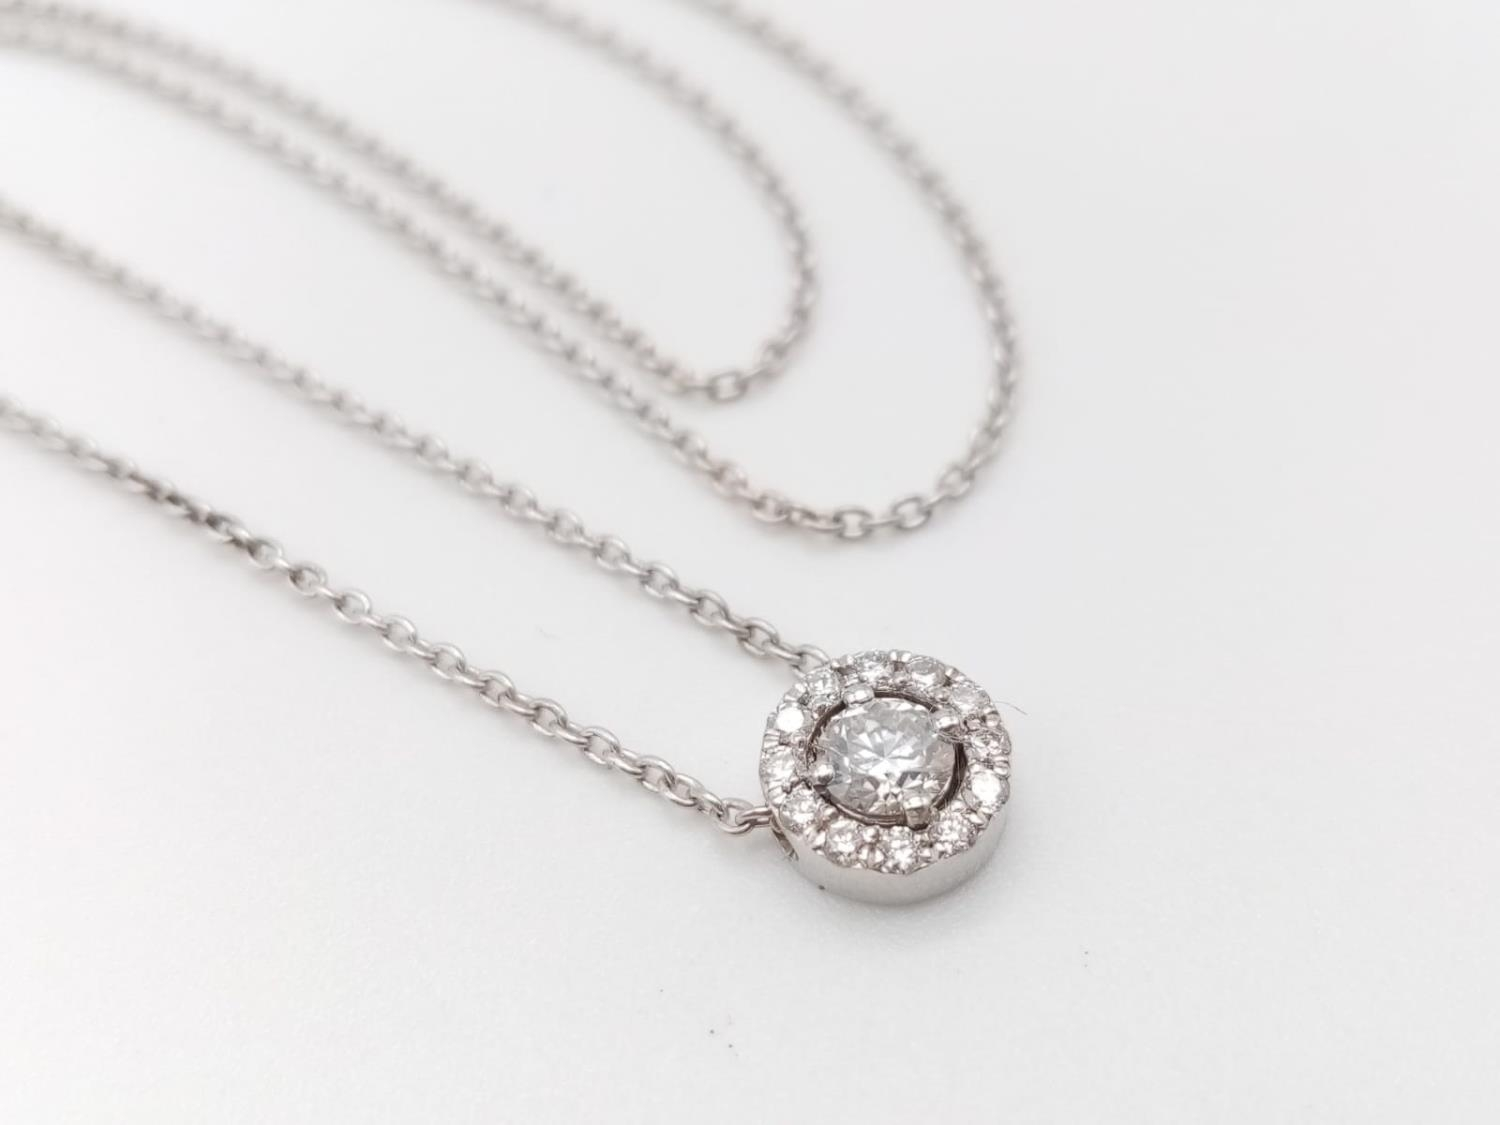 An elegant 14k white gold diamond necklace, weight 2.5g and approx 0.50ct diamonds chain 43cm long - Image 4 of 5